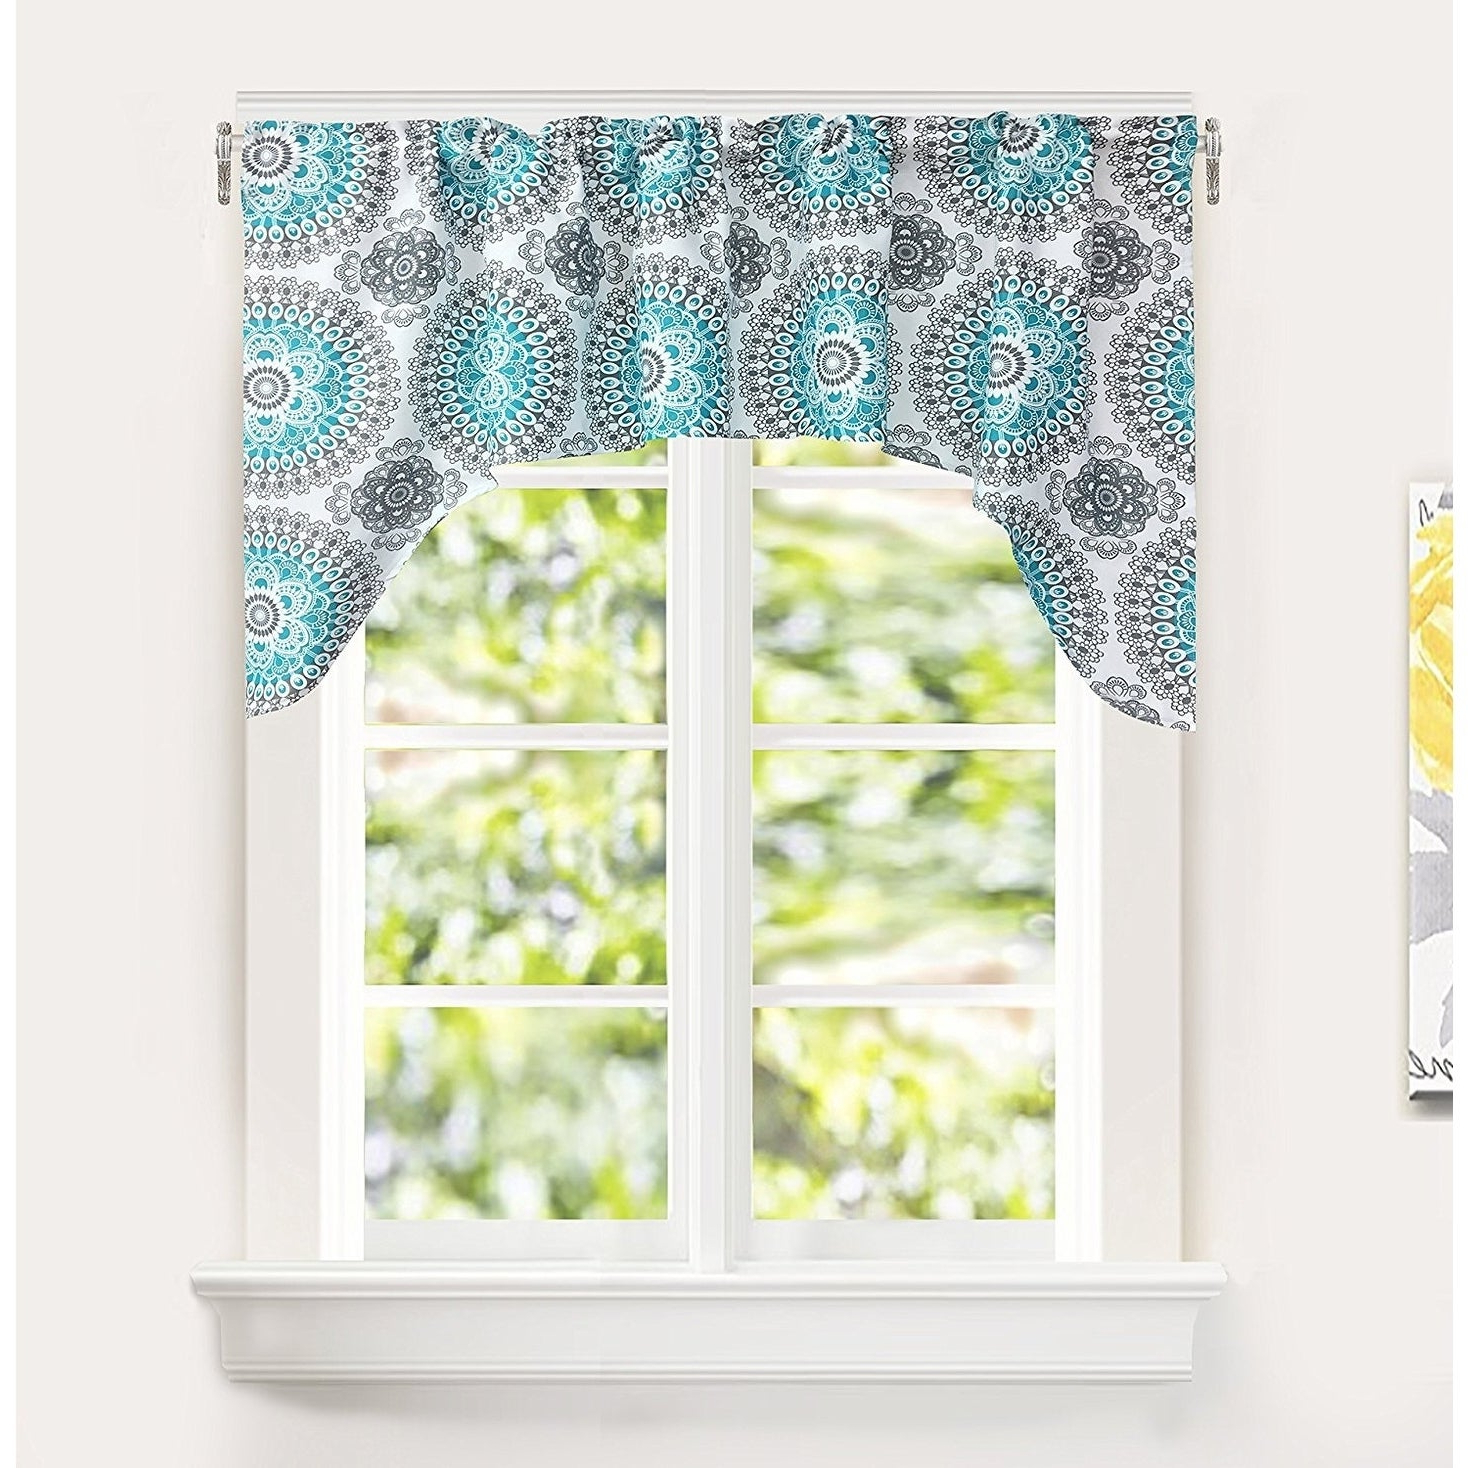 Most Current Medallion Window Curtain Valances Inside Driftaway Bella Medallion Pattern Kitchen Swag Valance (Gallery 10 of 20)